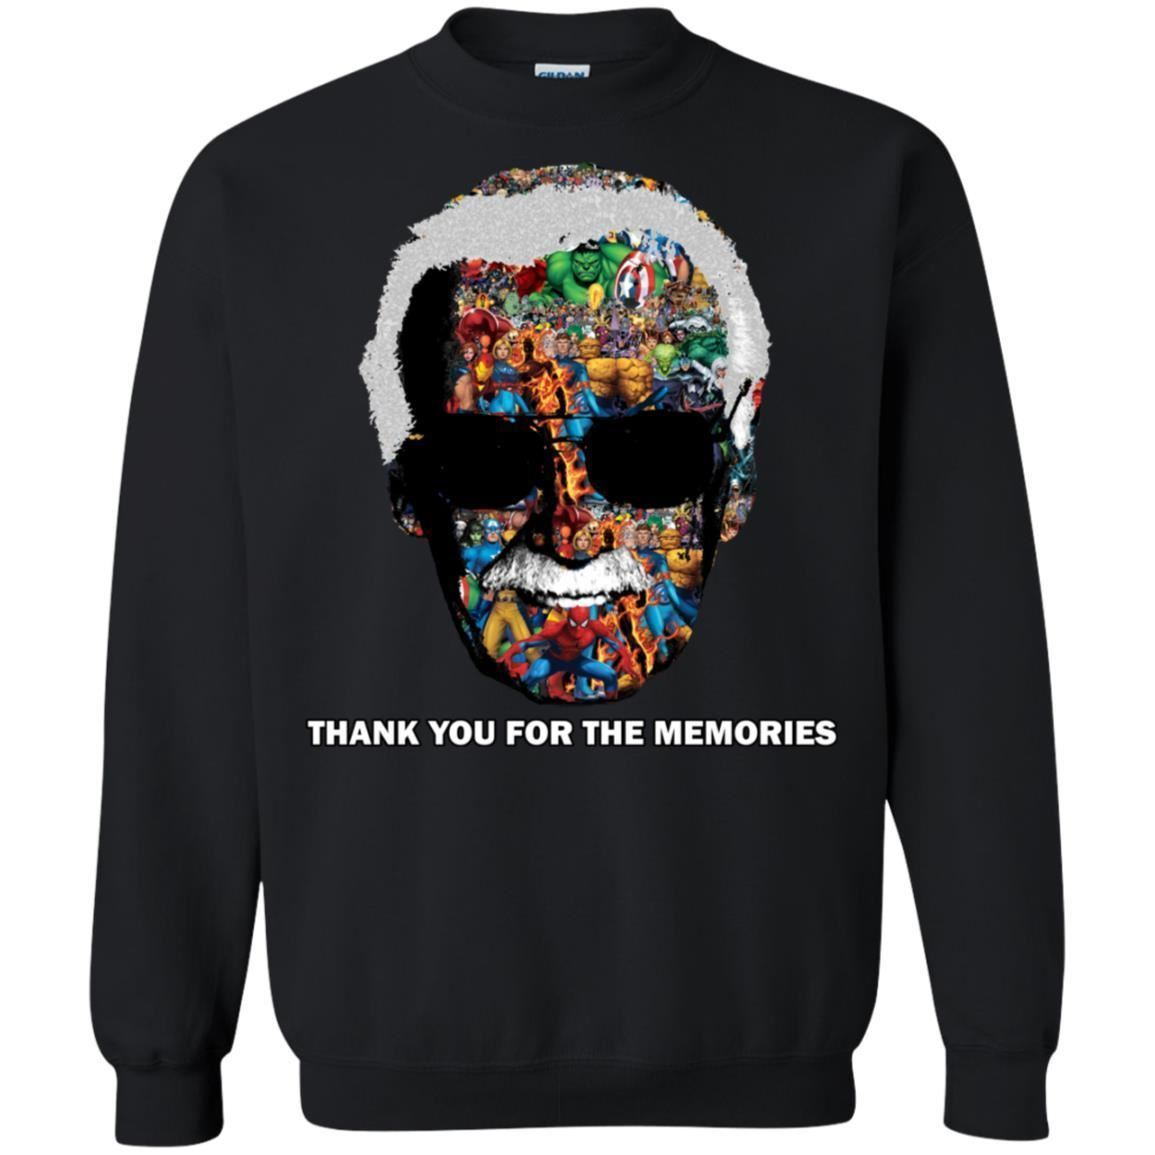 Thank You For The Memories Tee Shirt  - Inspired By Stan Lee Sweatshirt - Super image 8